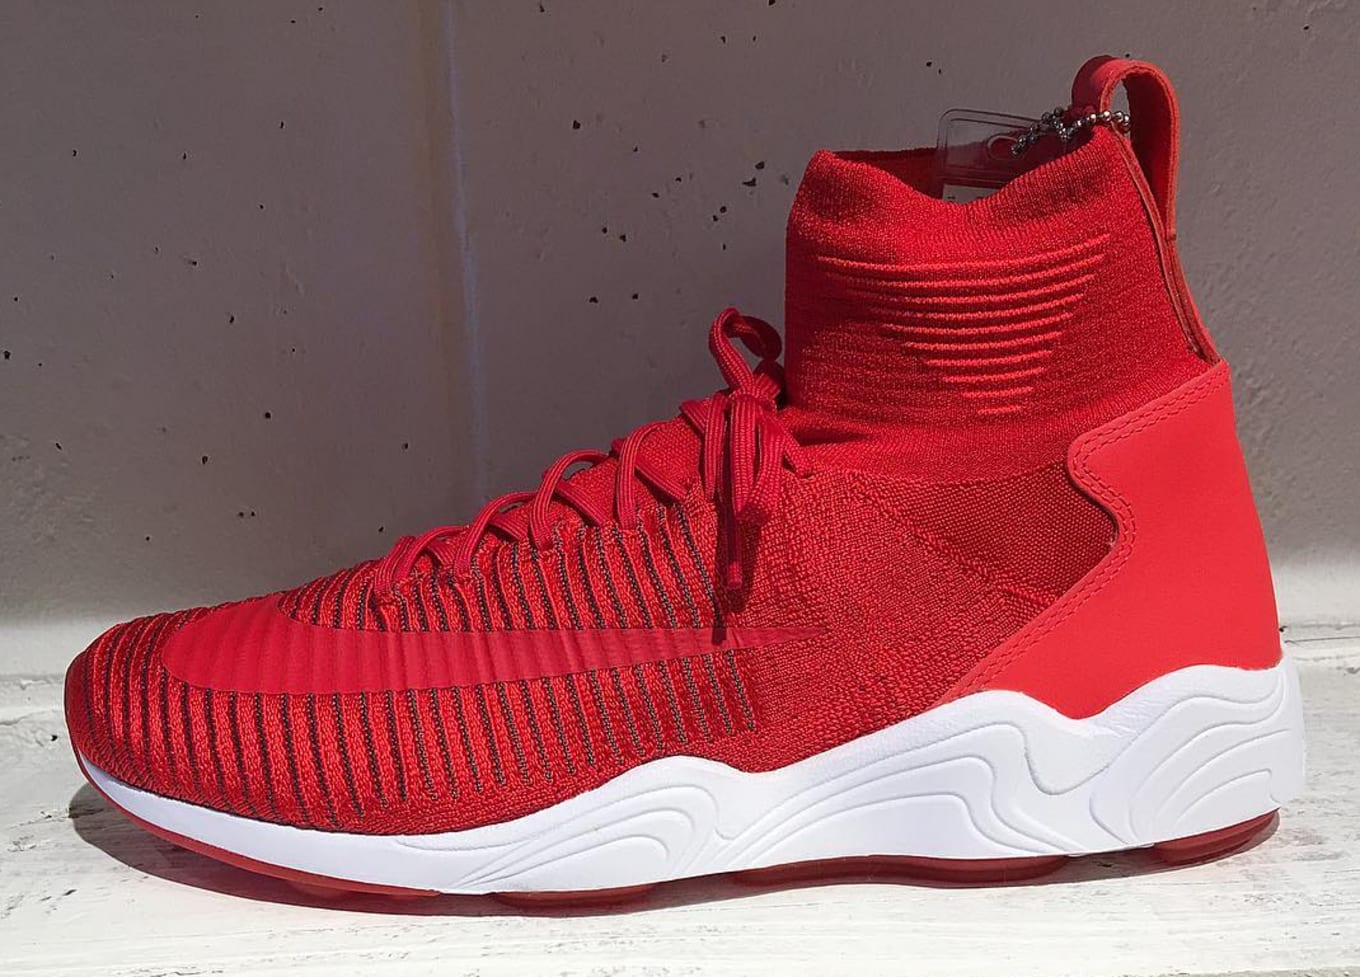 27d6096f3 Red Nike Zoom Mercurial Flyknit